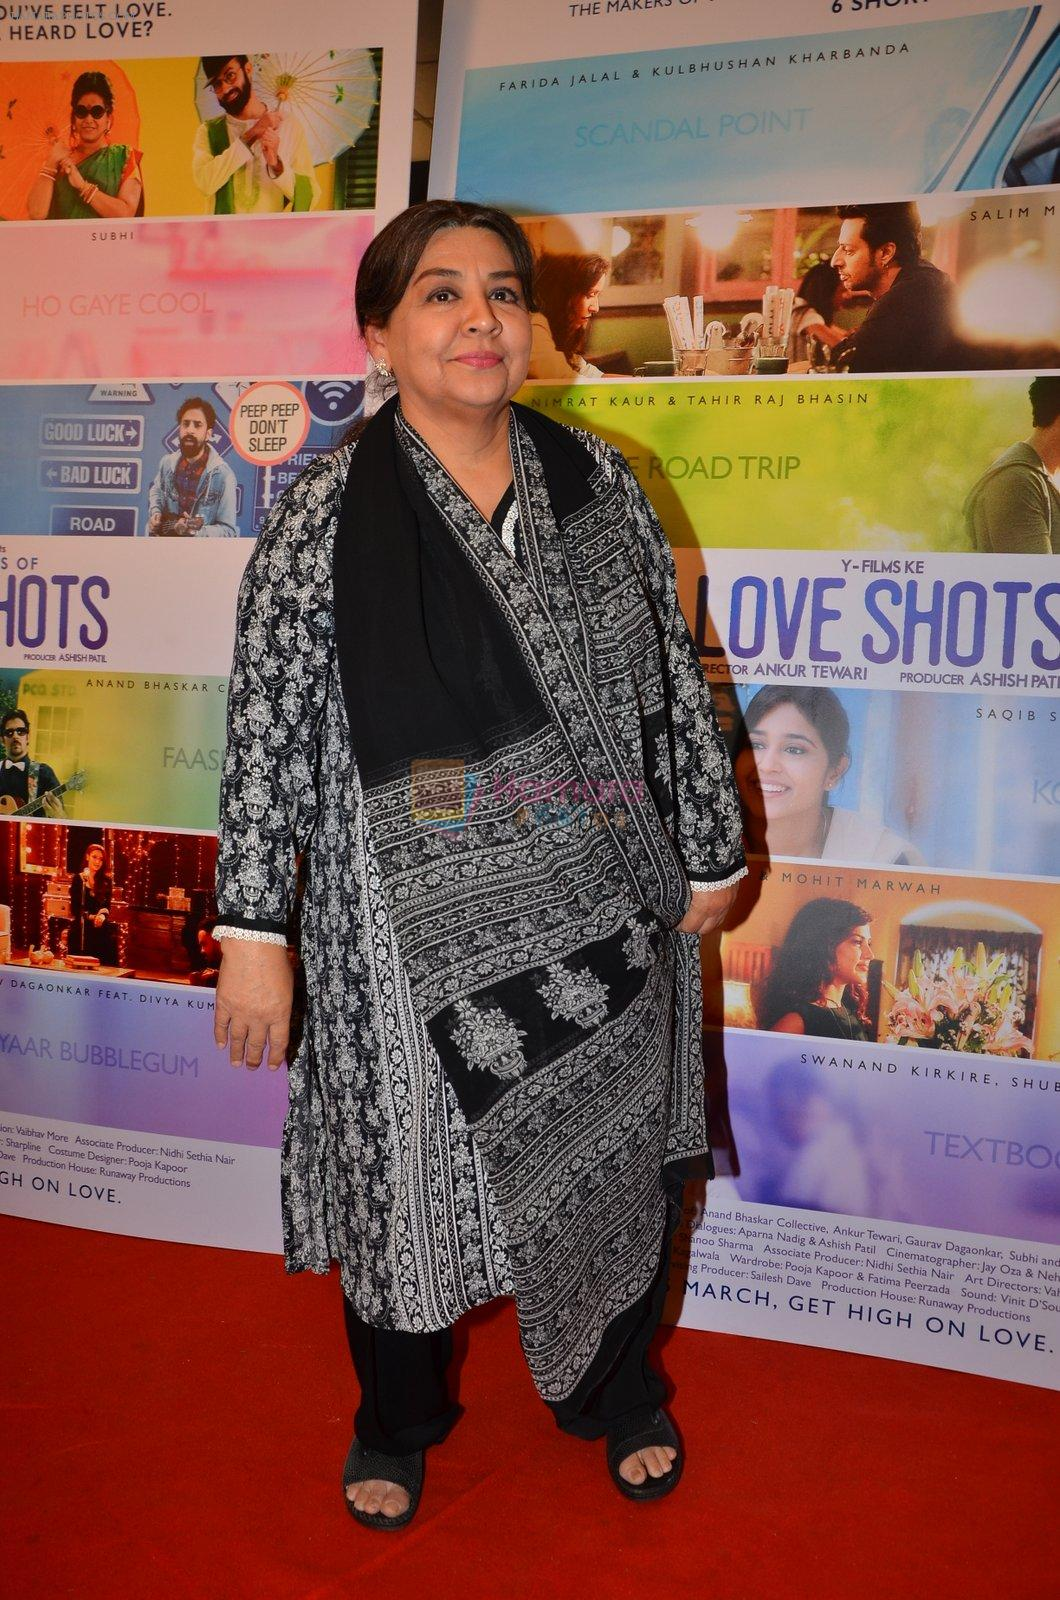 Farida Jalal at the launch of Love Shots film launch on 7th March 2016